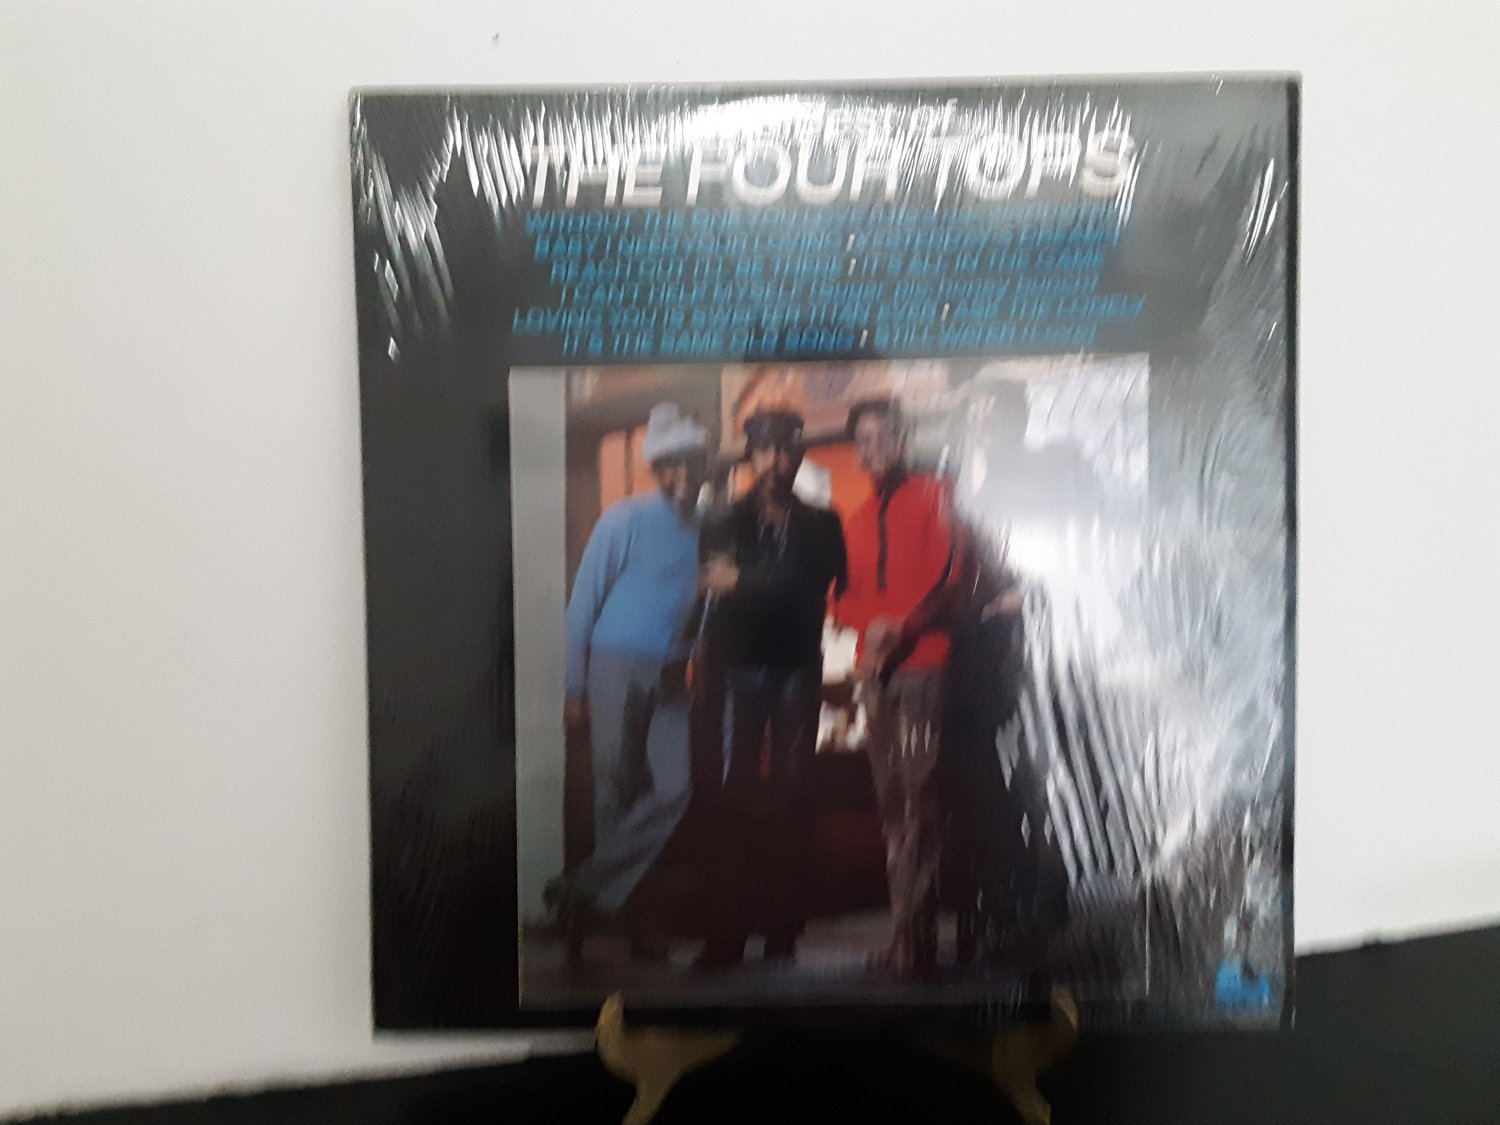 The Four Tops - The Best Of The Four Tops - Circa 1977